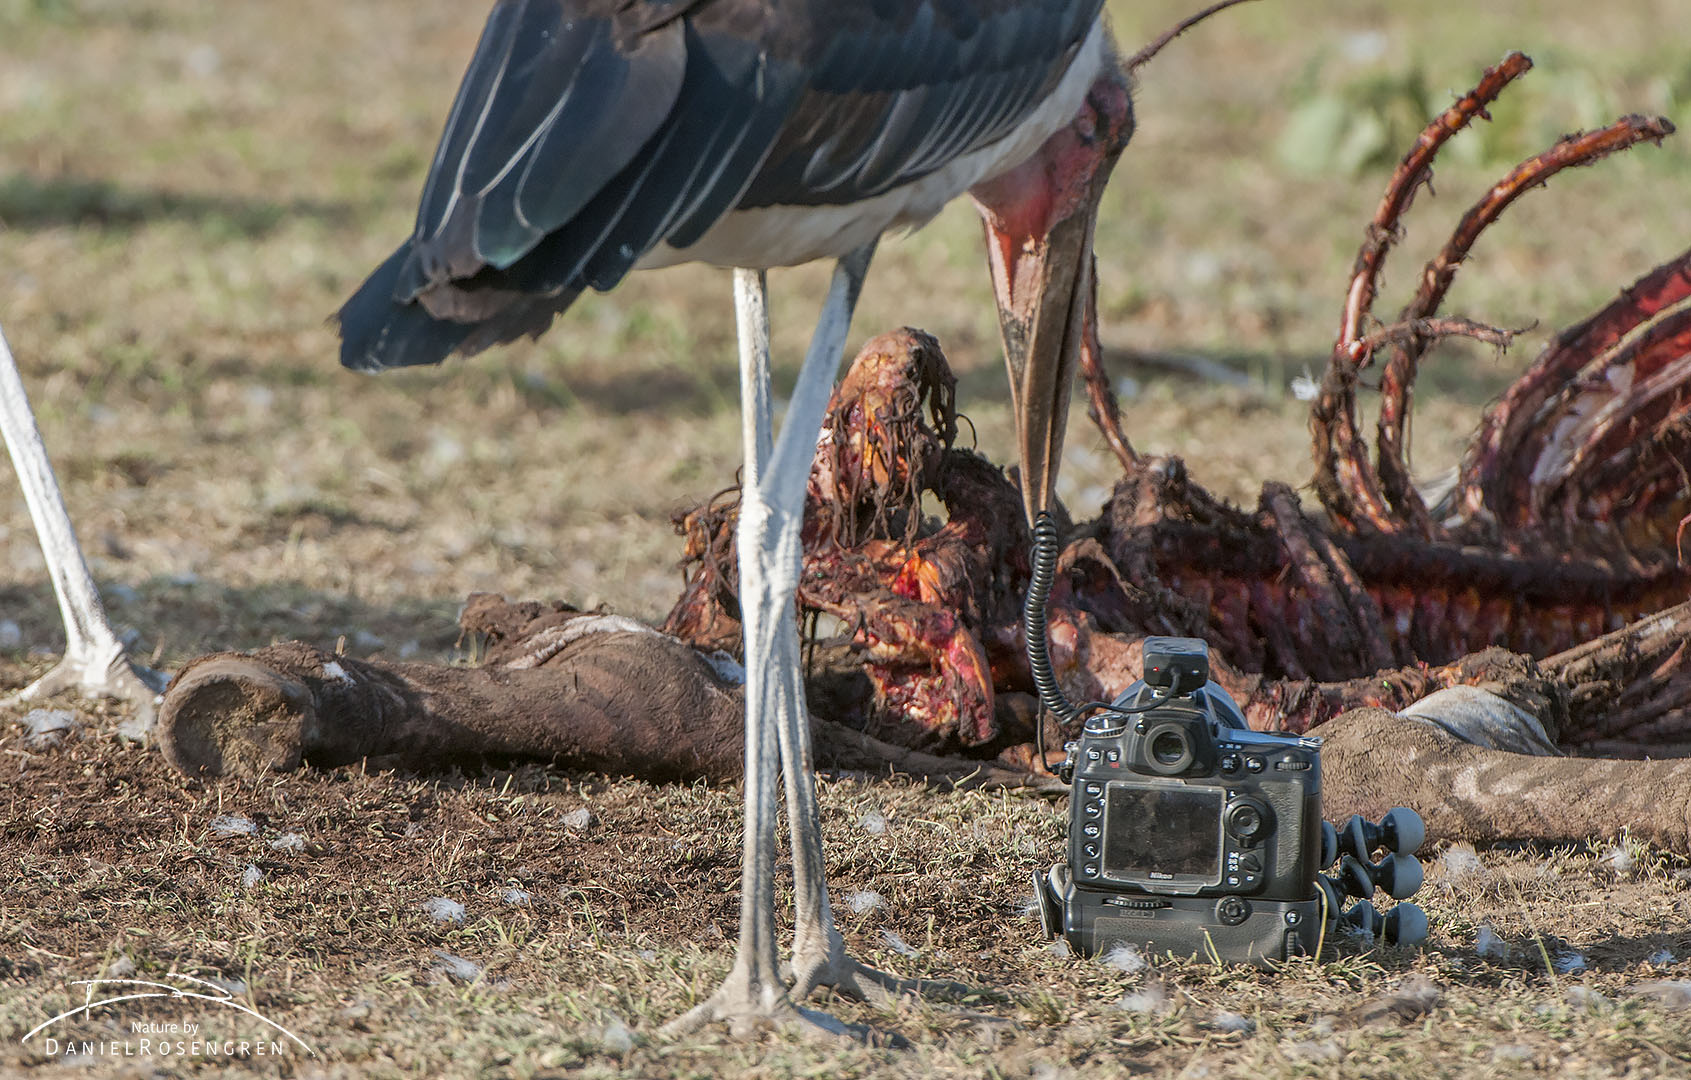 A Marabou stork testing if the remote control trigger's cable is edible. Luckily, it decided it wasn't. © Daniel Rosengren